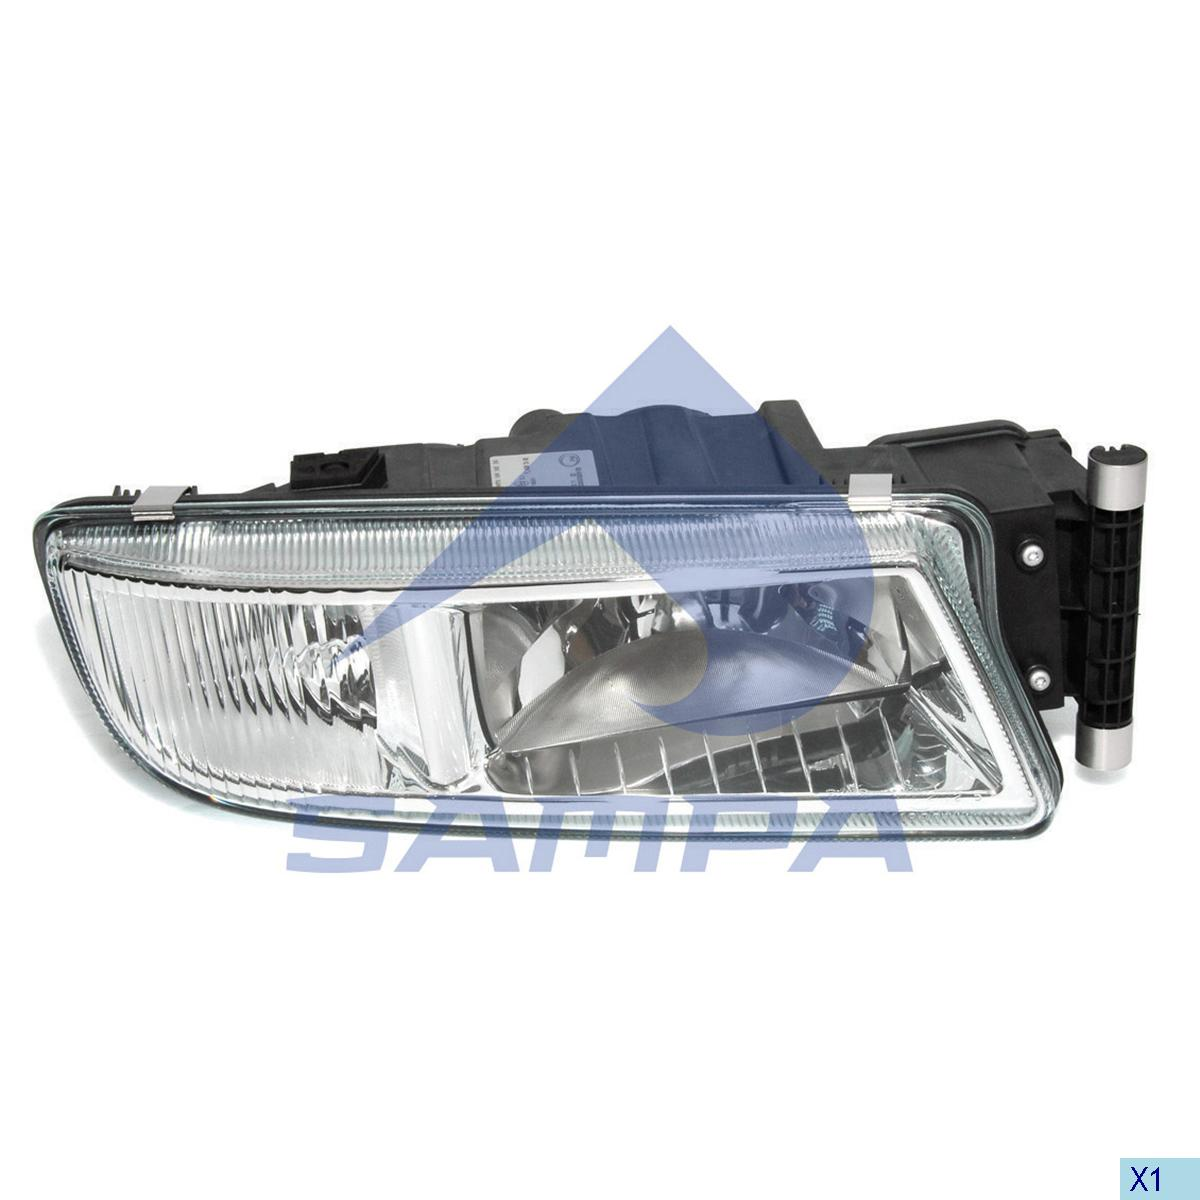 Auxiliary Lamp, Head Lamp, Man, Electric System